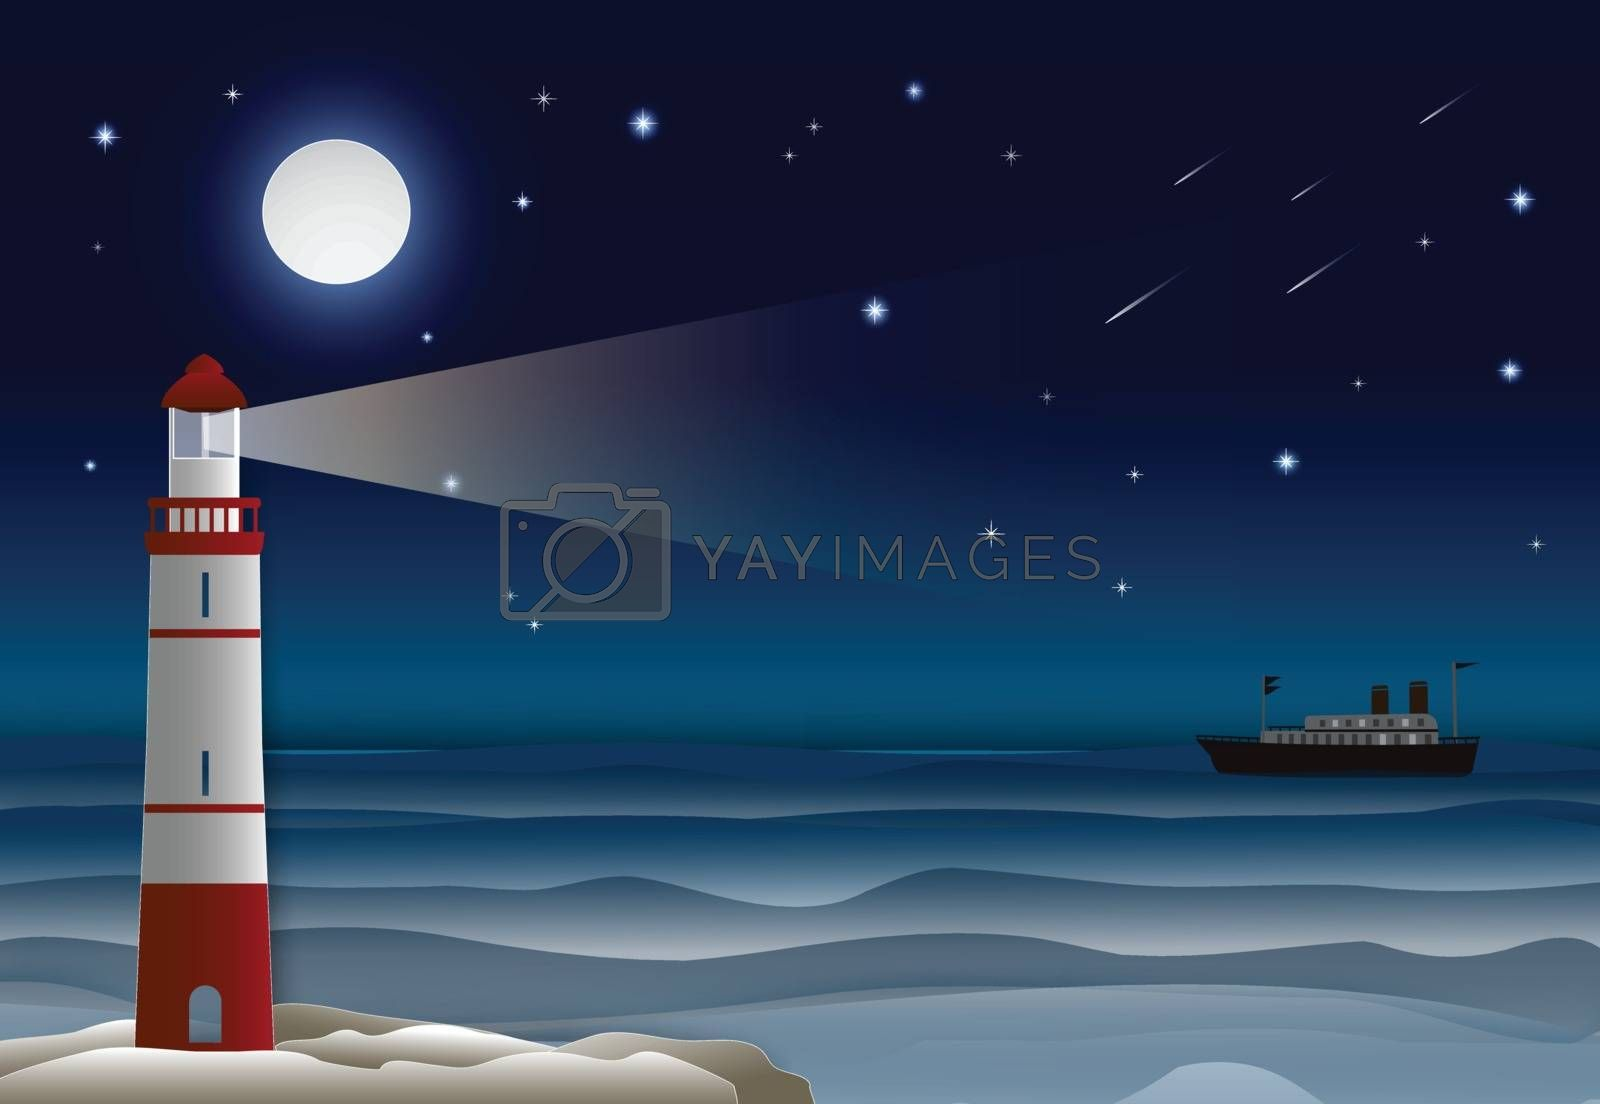 Lighthouse with Ocean liner in the ocean and night sky. Paper craft illustration background.